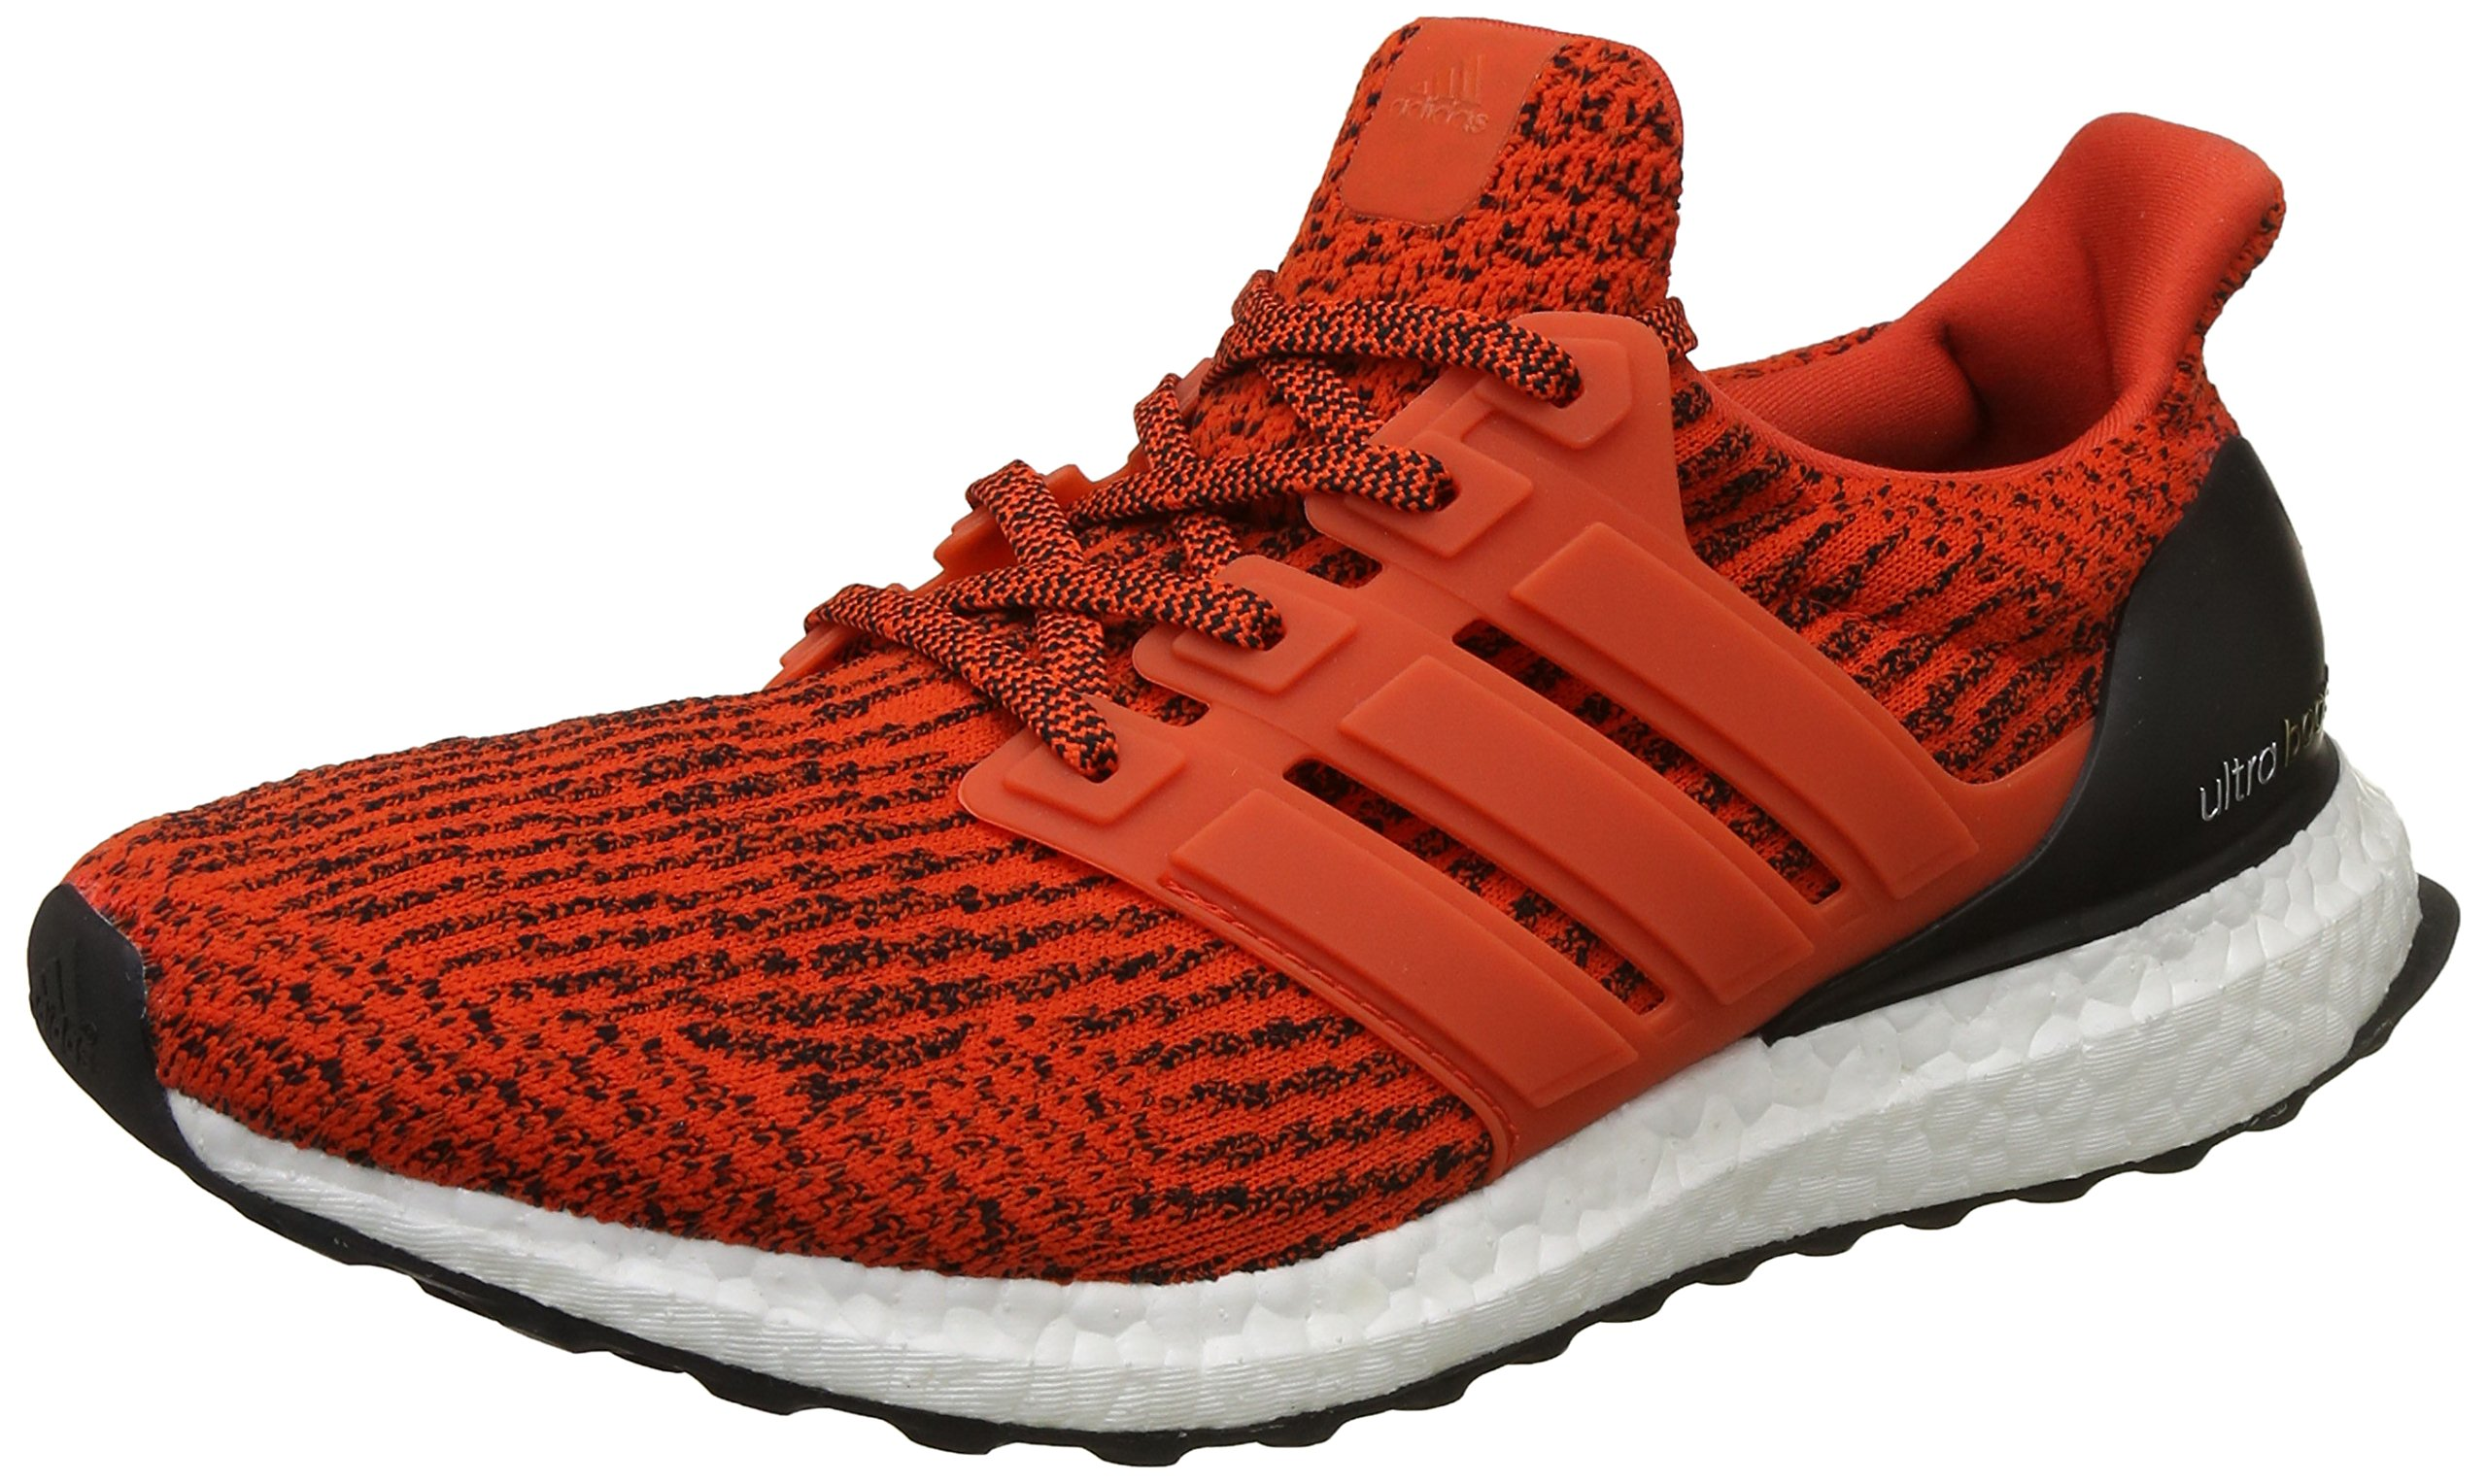 1ddd4bfa433 Galleon - Adidas SS17 Mens Ultraboost Running Shoes - Energy - Neutral - US  9 - Energy Red Black